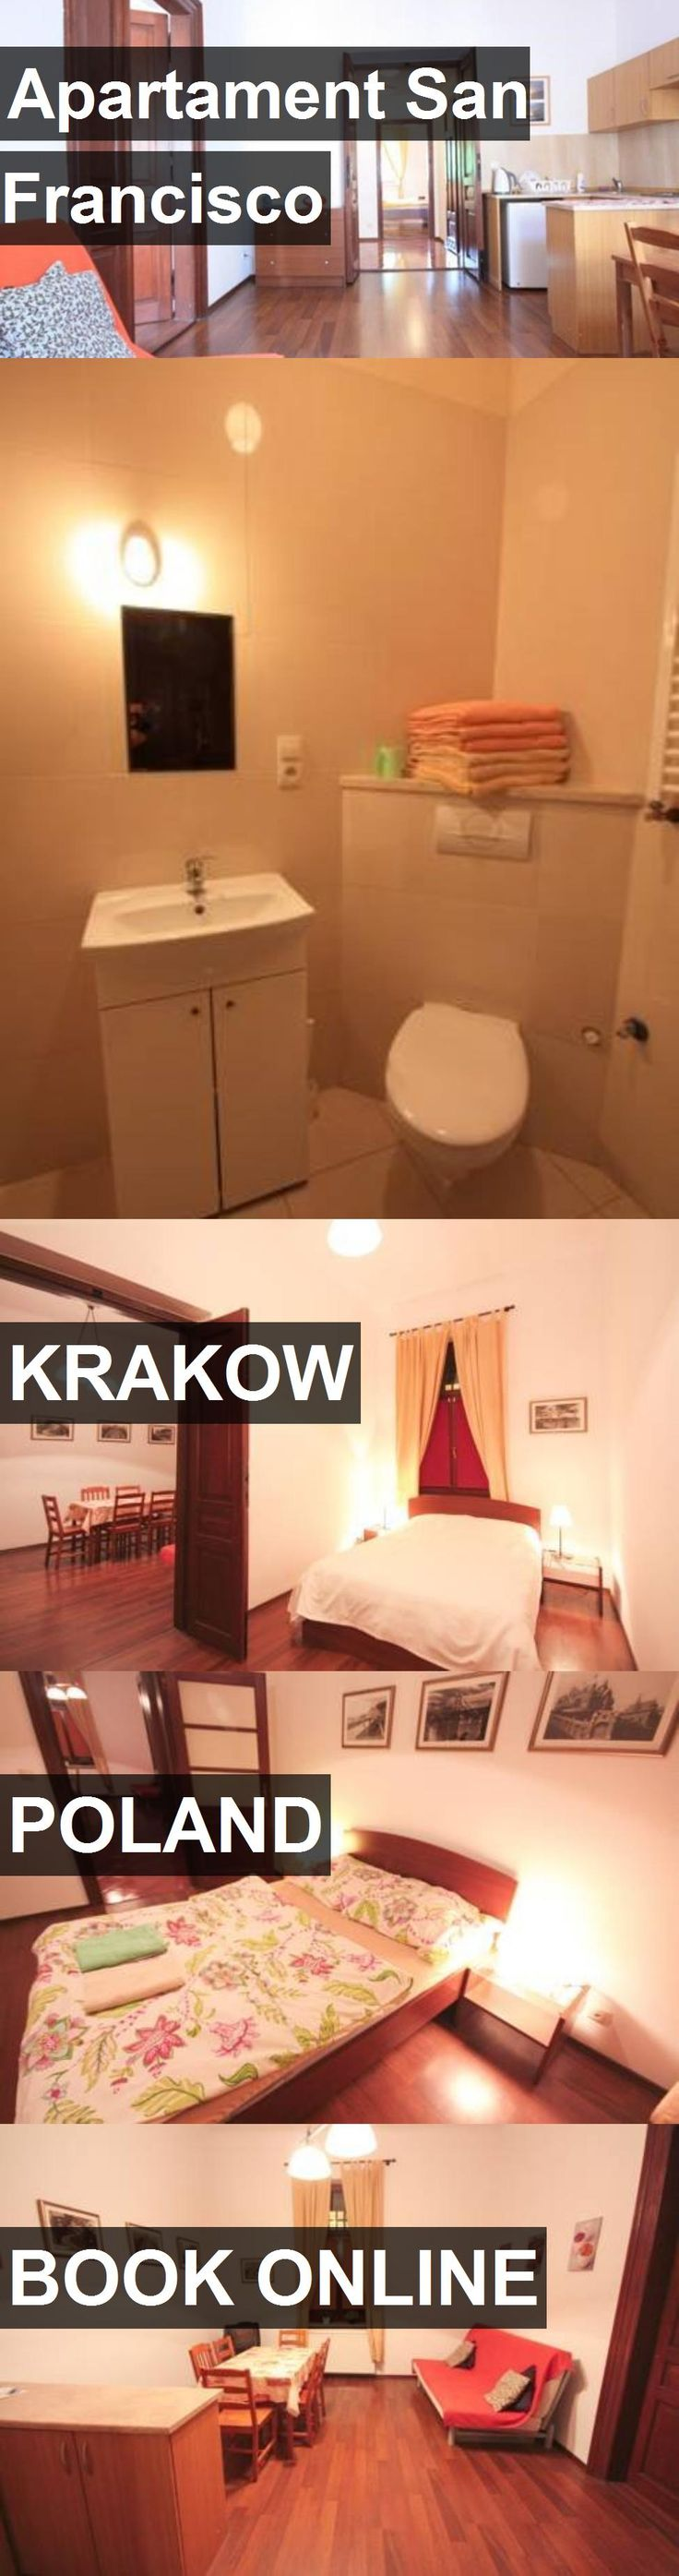 Hotel Apartament San Francisco in Krakow, Poland. For more information, photos, reviews and best prices please follow the link. #Poland #Krakow #hotel #travel #vacation